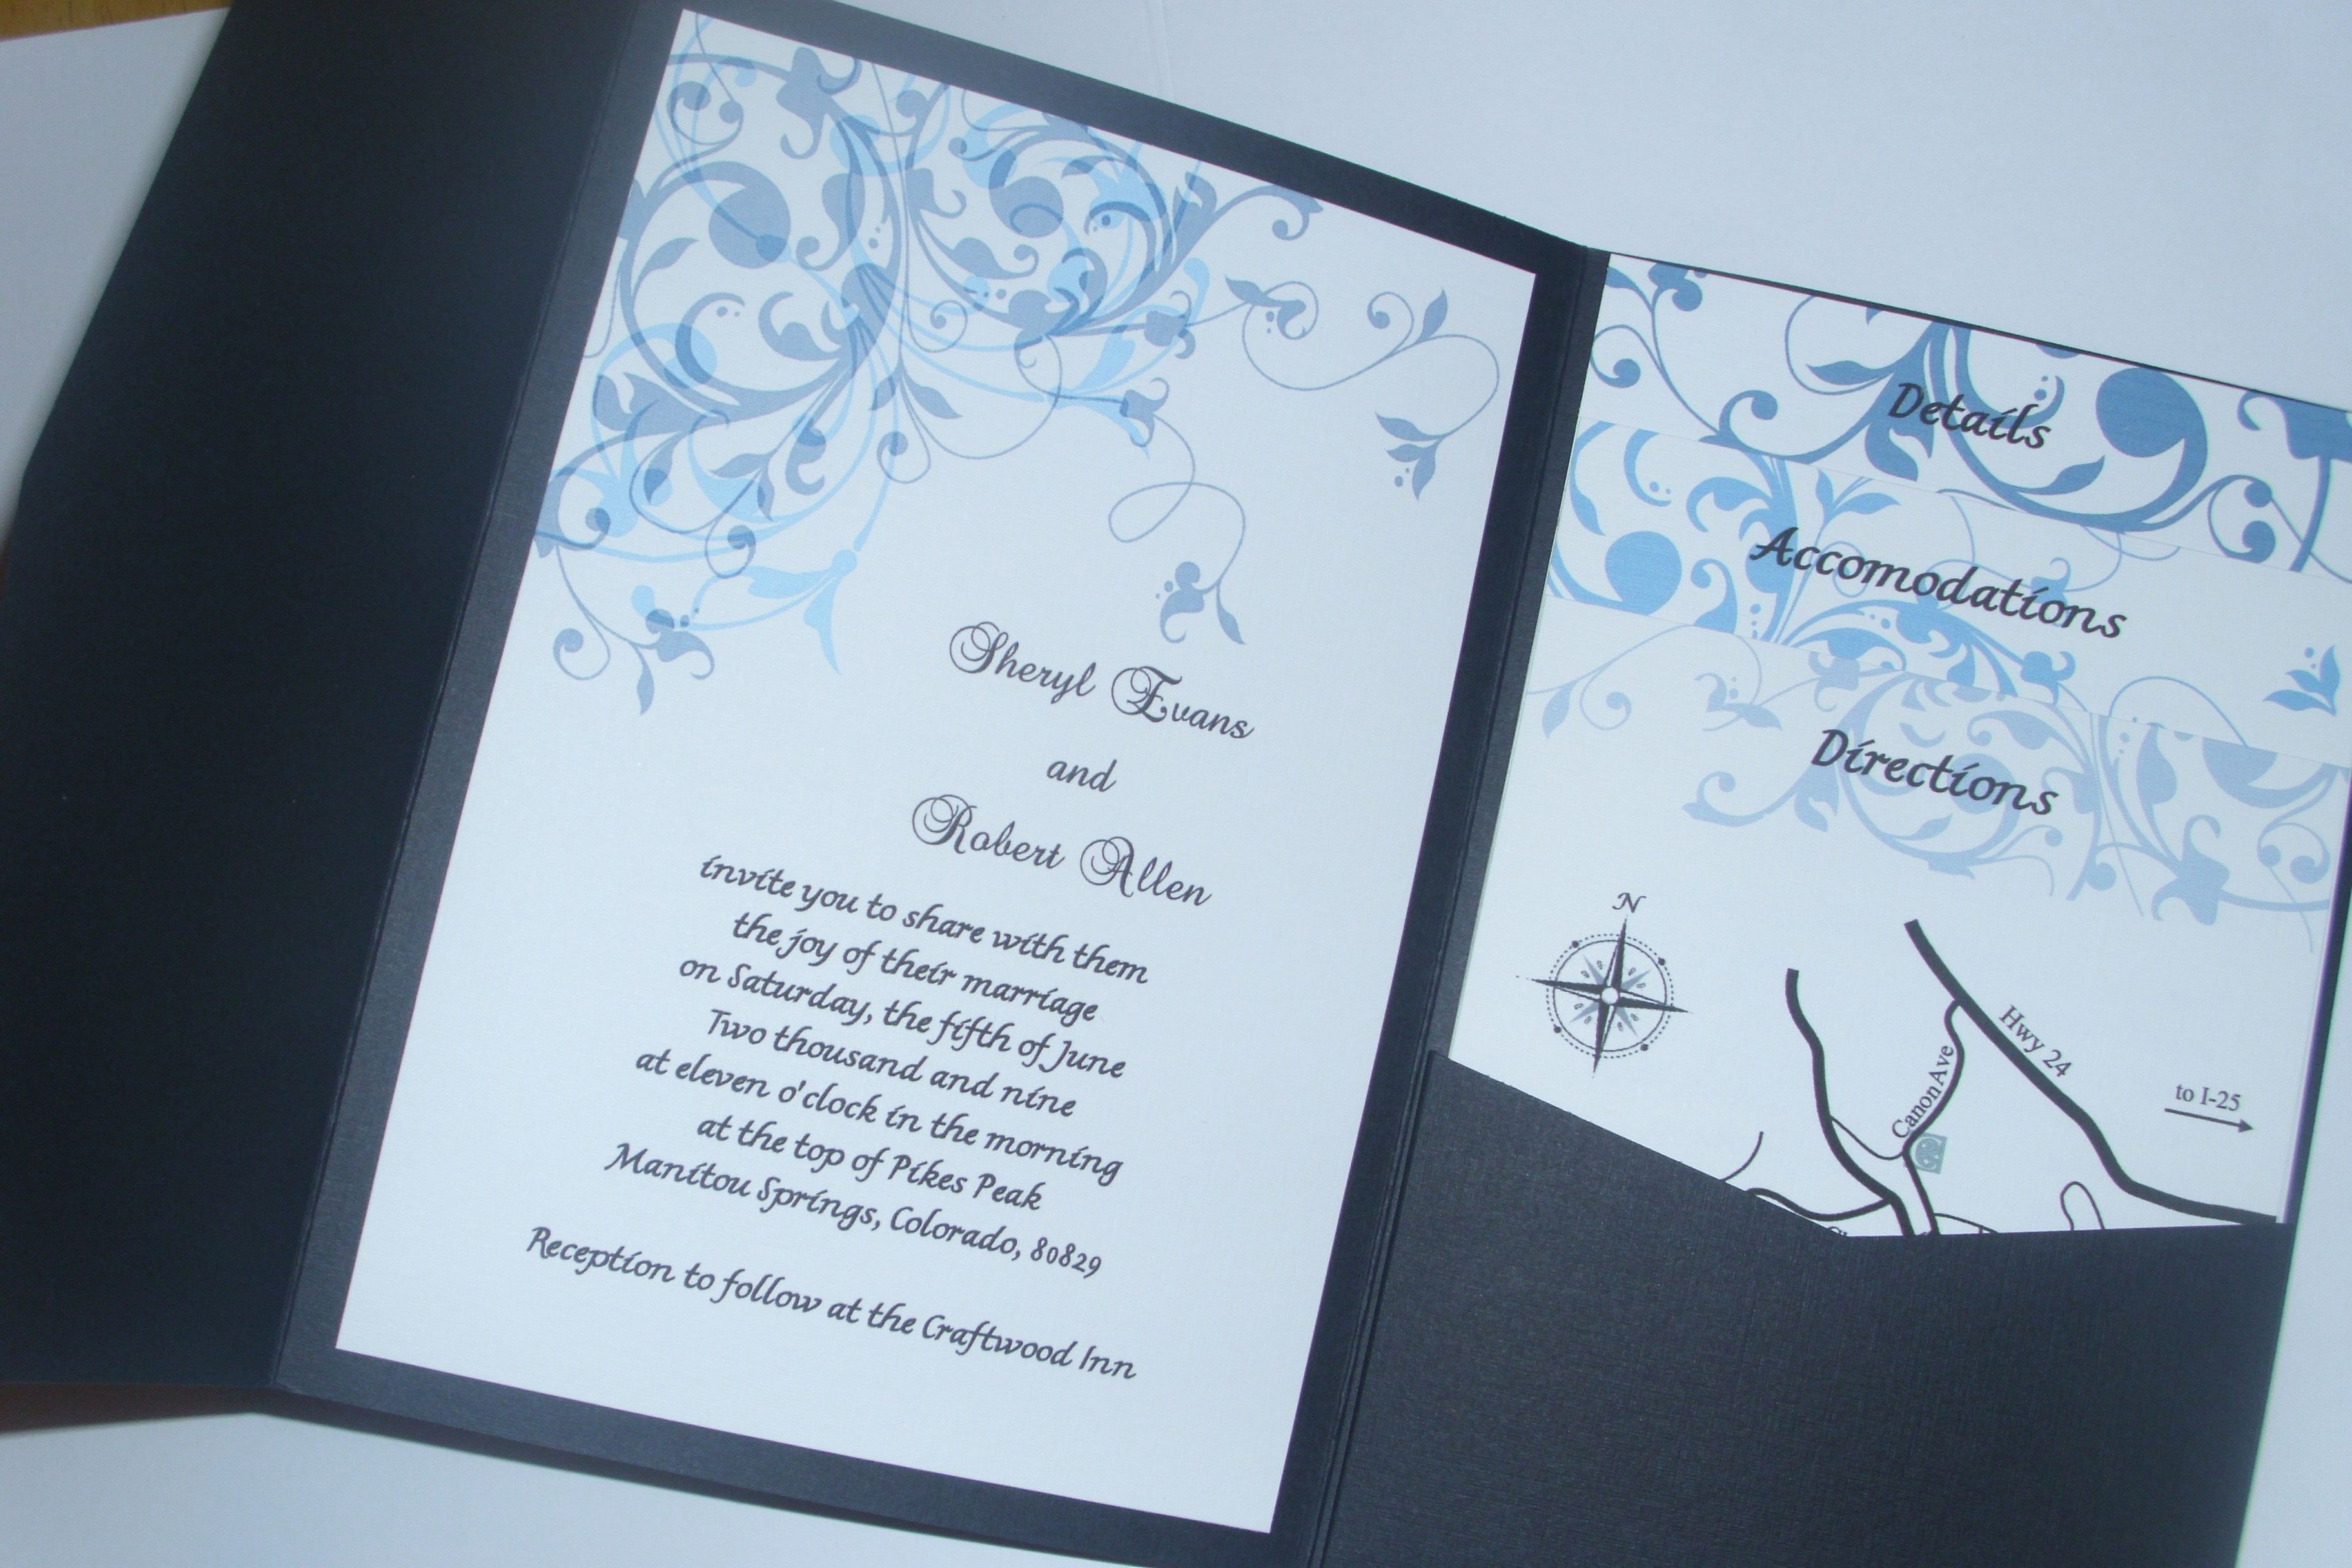 Homemadeweddinginvitationsideas Homemade Wedding Invitation - Make your own wedding invites templates